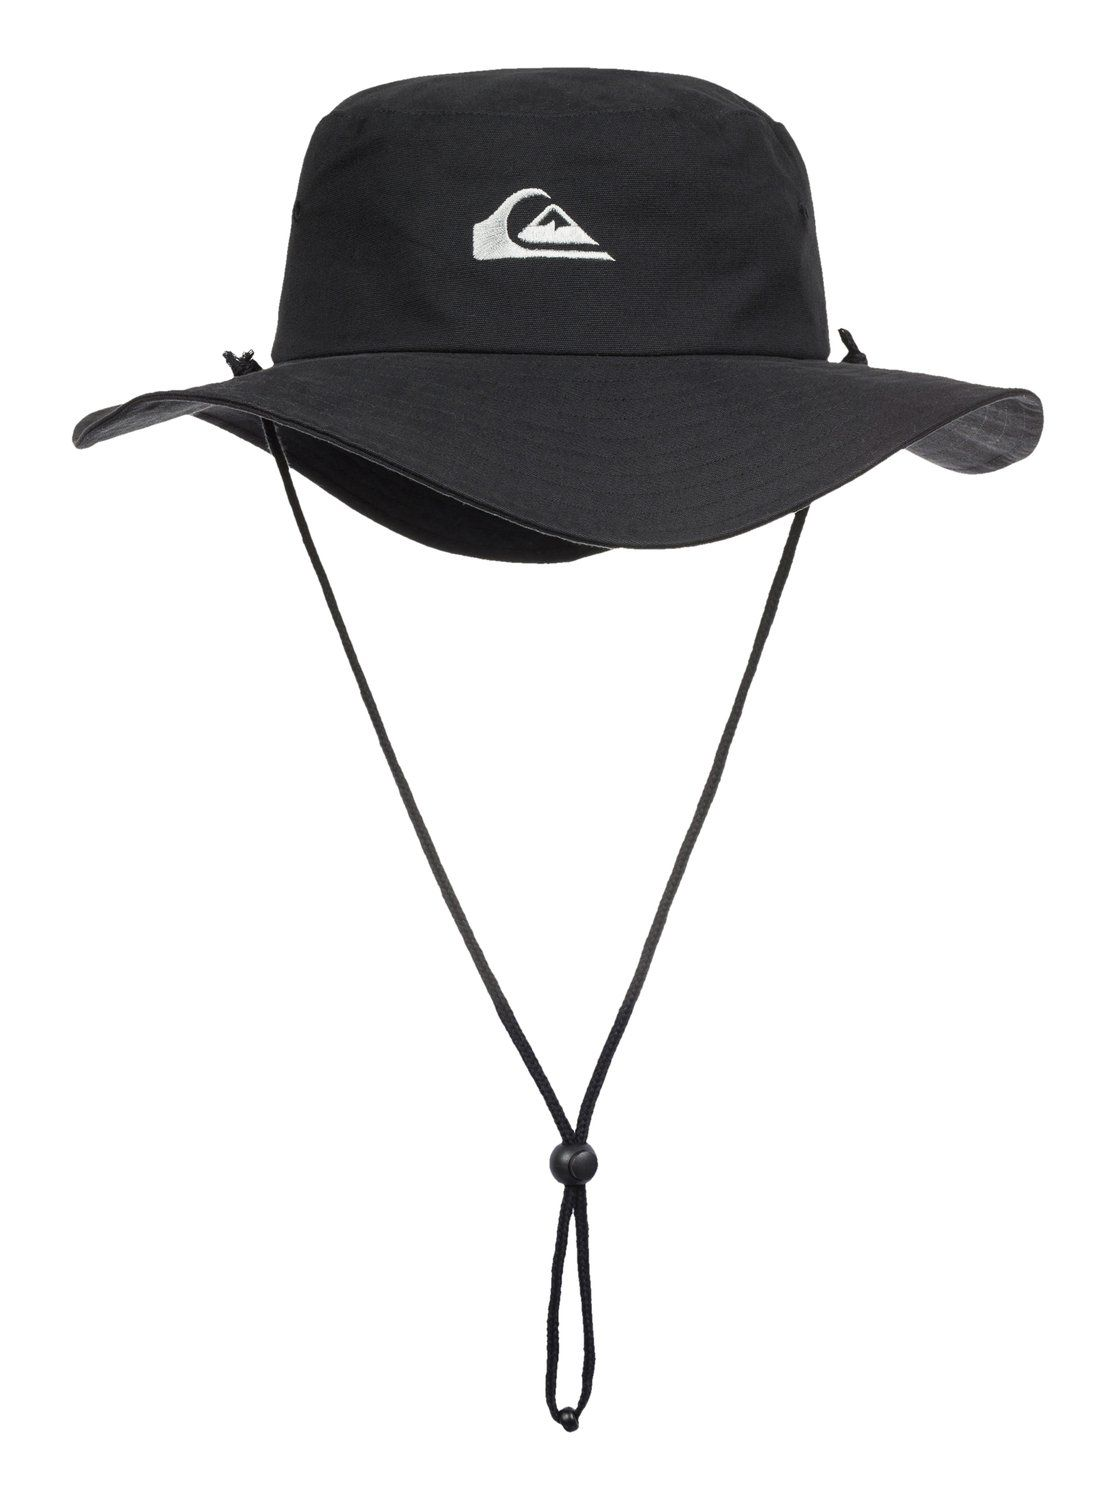 a4a878b67 Bushmaster Bucket Hat | Apparel/Accessories - Civilian Gear | Hats ...